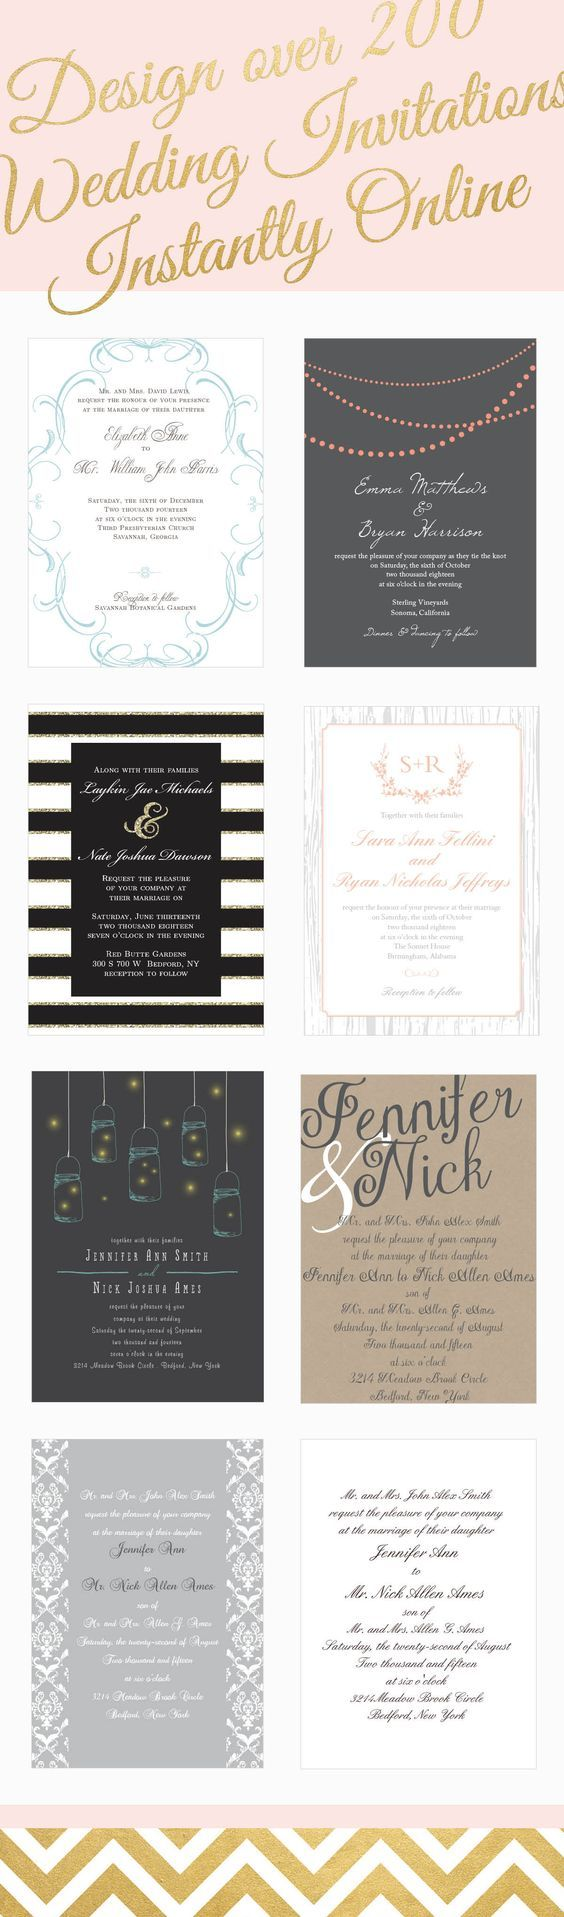 wedding invitation wording for hindu marriage%0A Design your wedding invitations online today  Click here  http   www